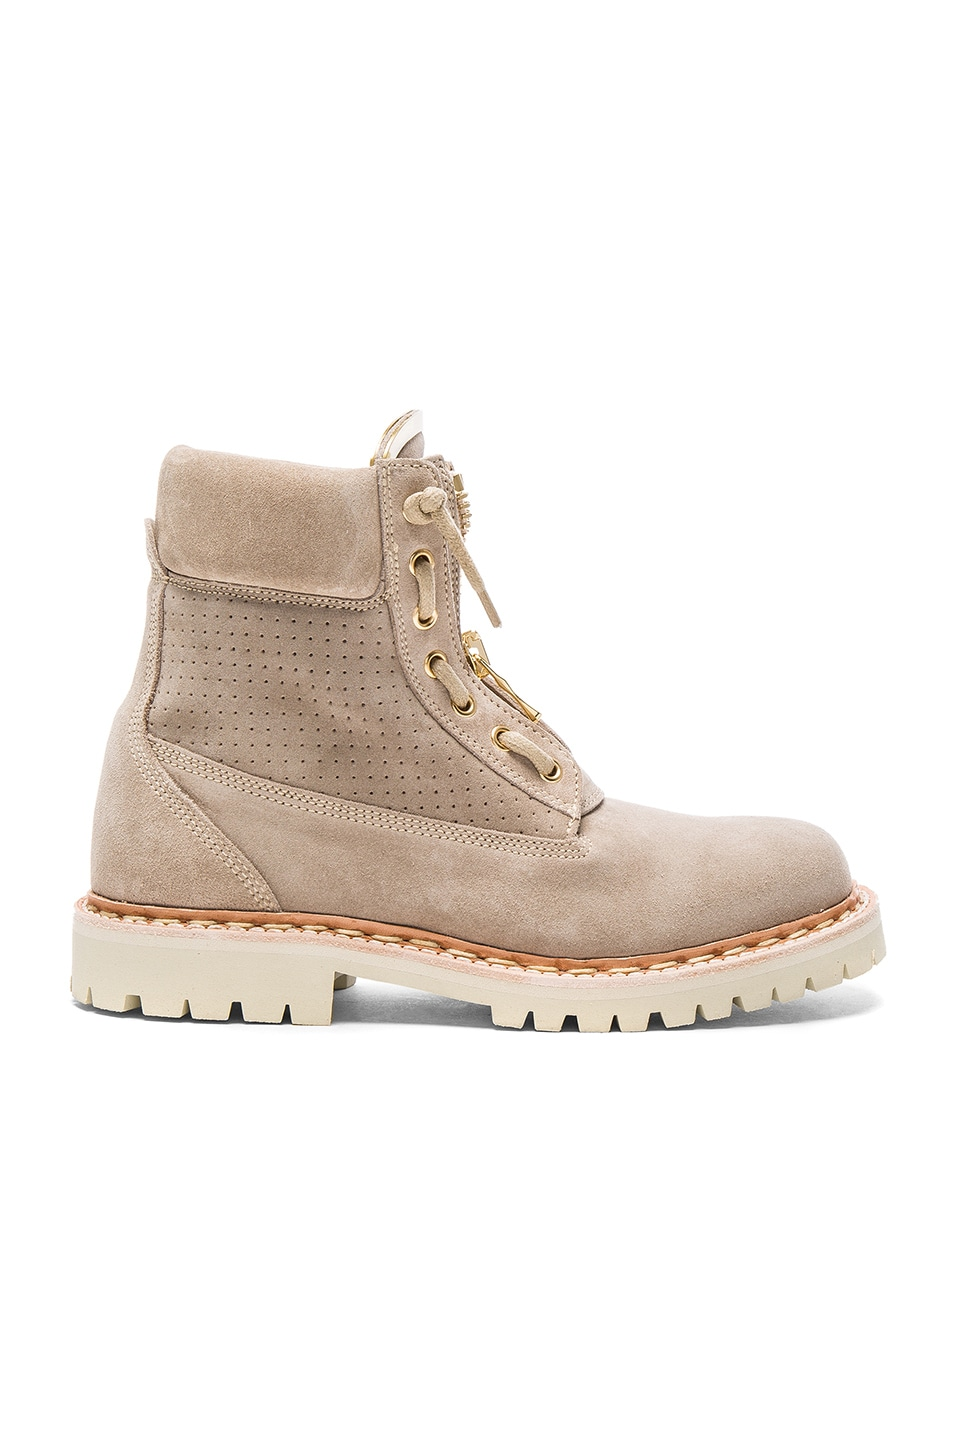 Image 1 of BALMAIN Suede Taiga Boots in Beige